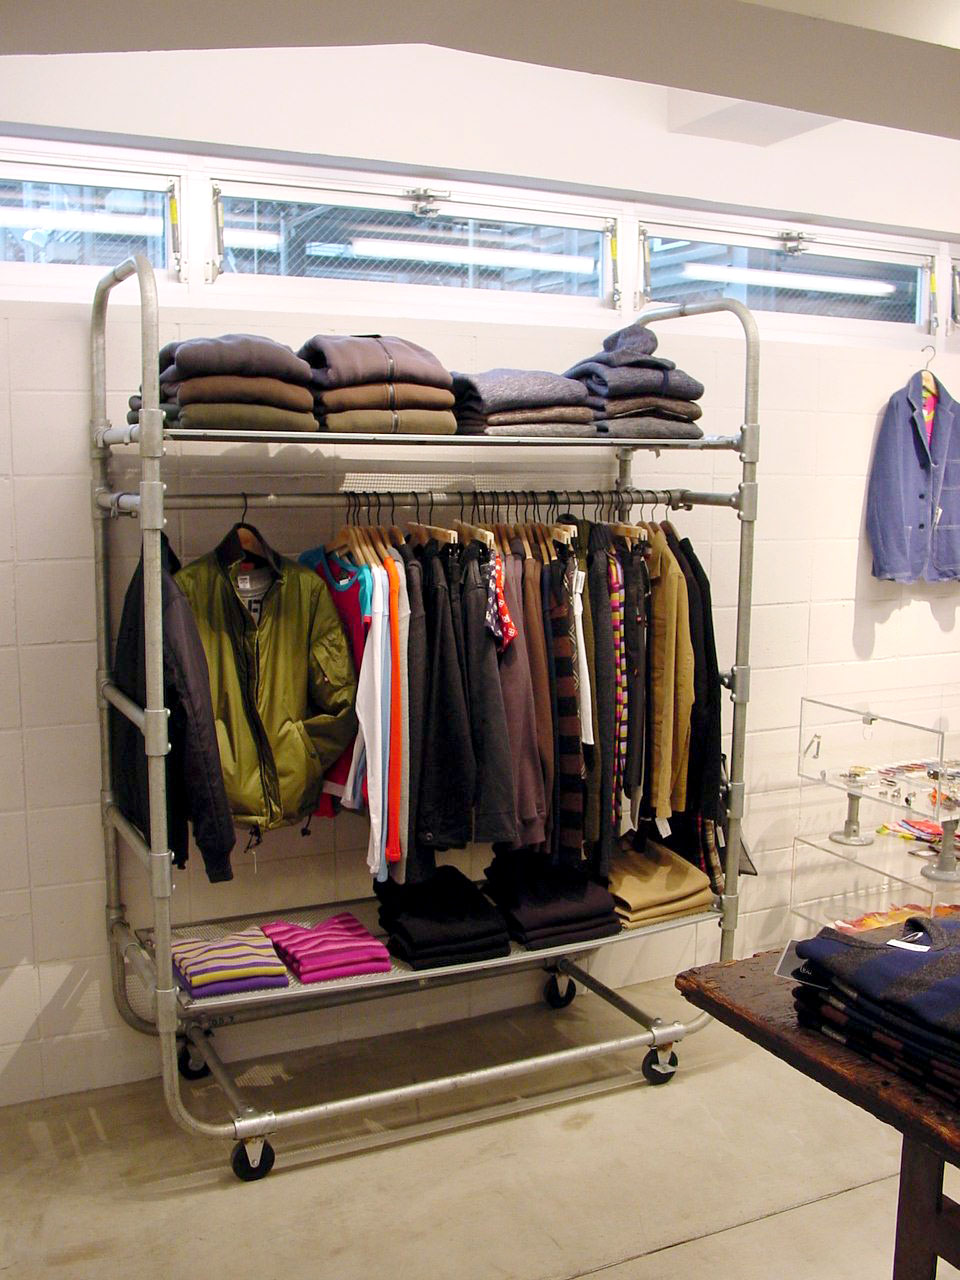 39 diy retail display ideas from